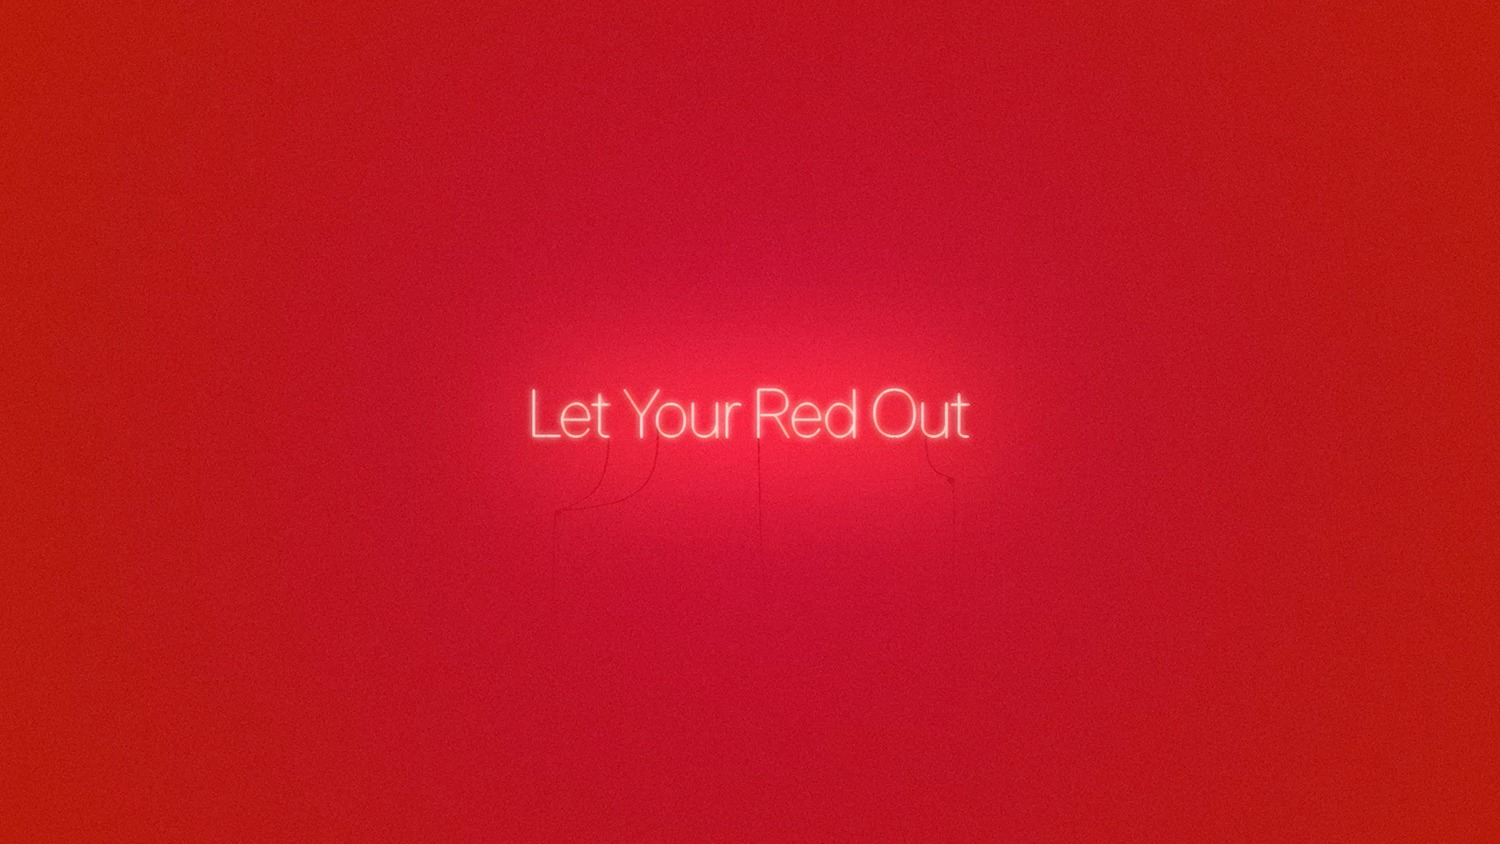 Apple — Let Your Red Out